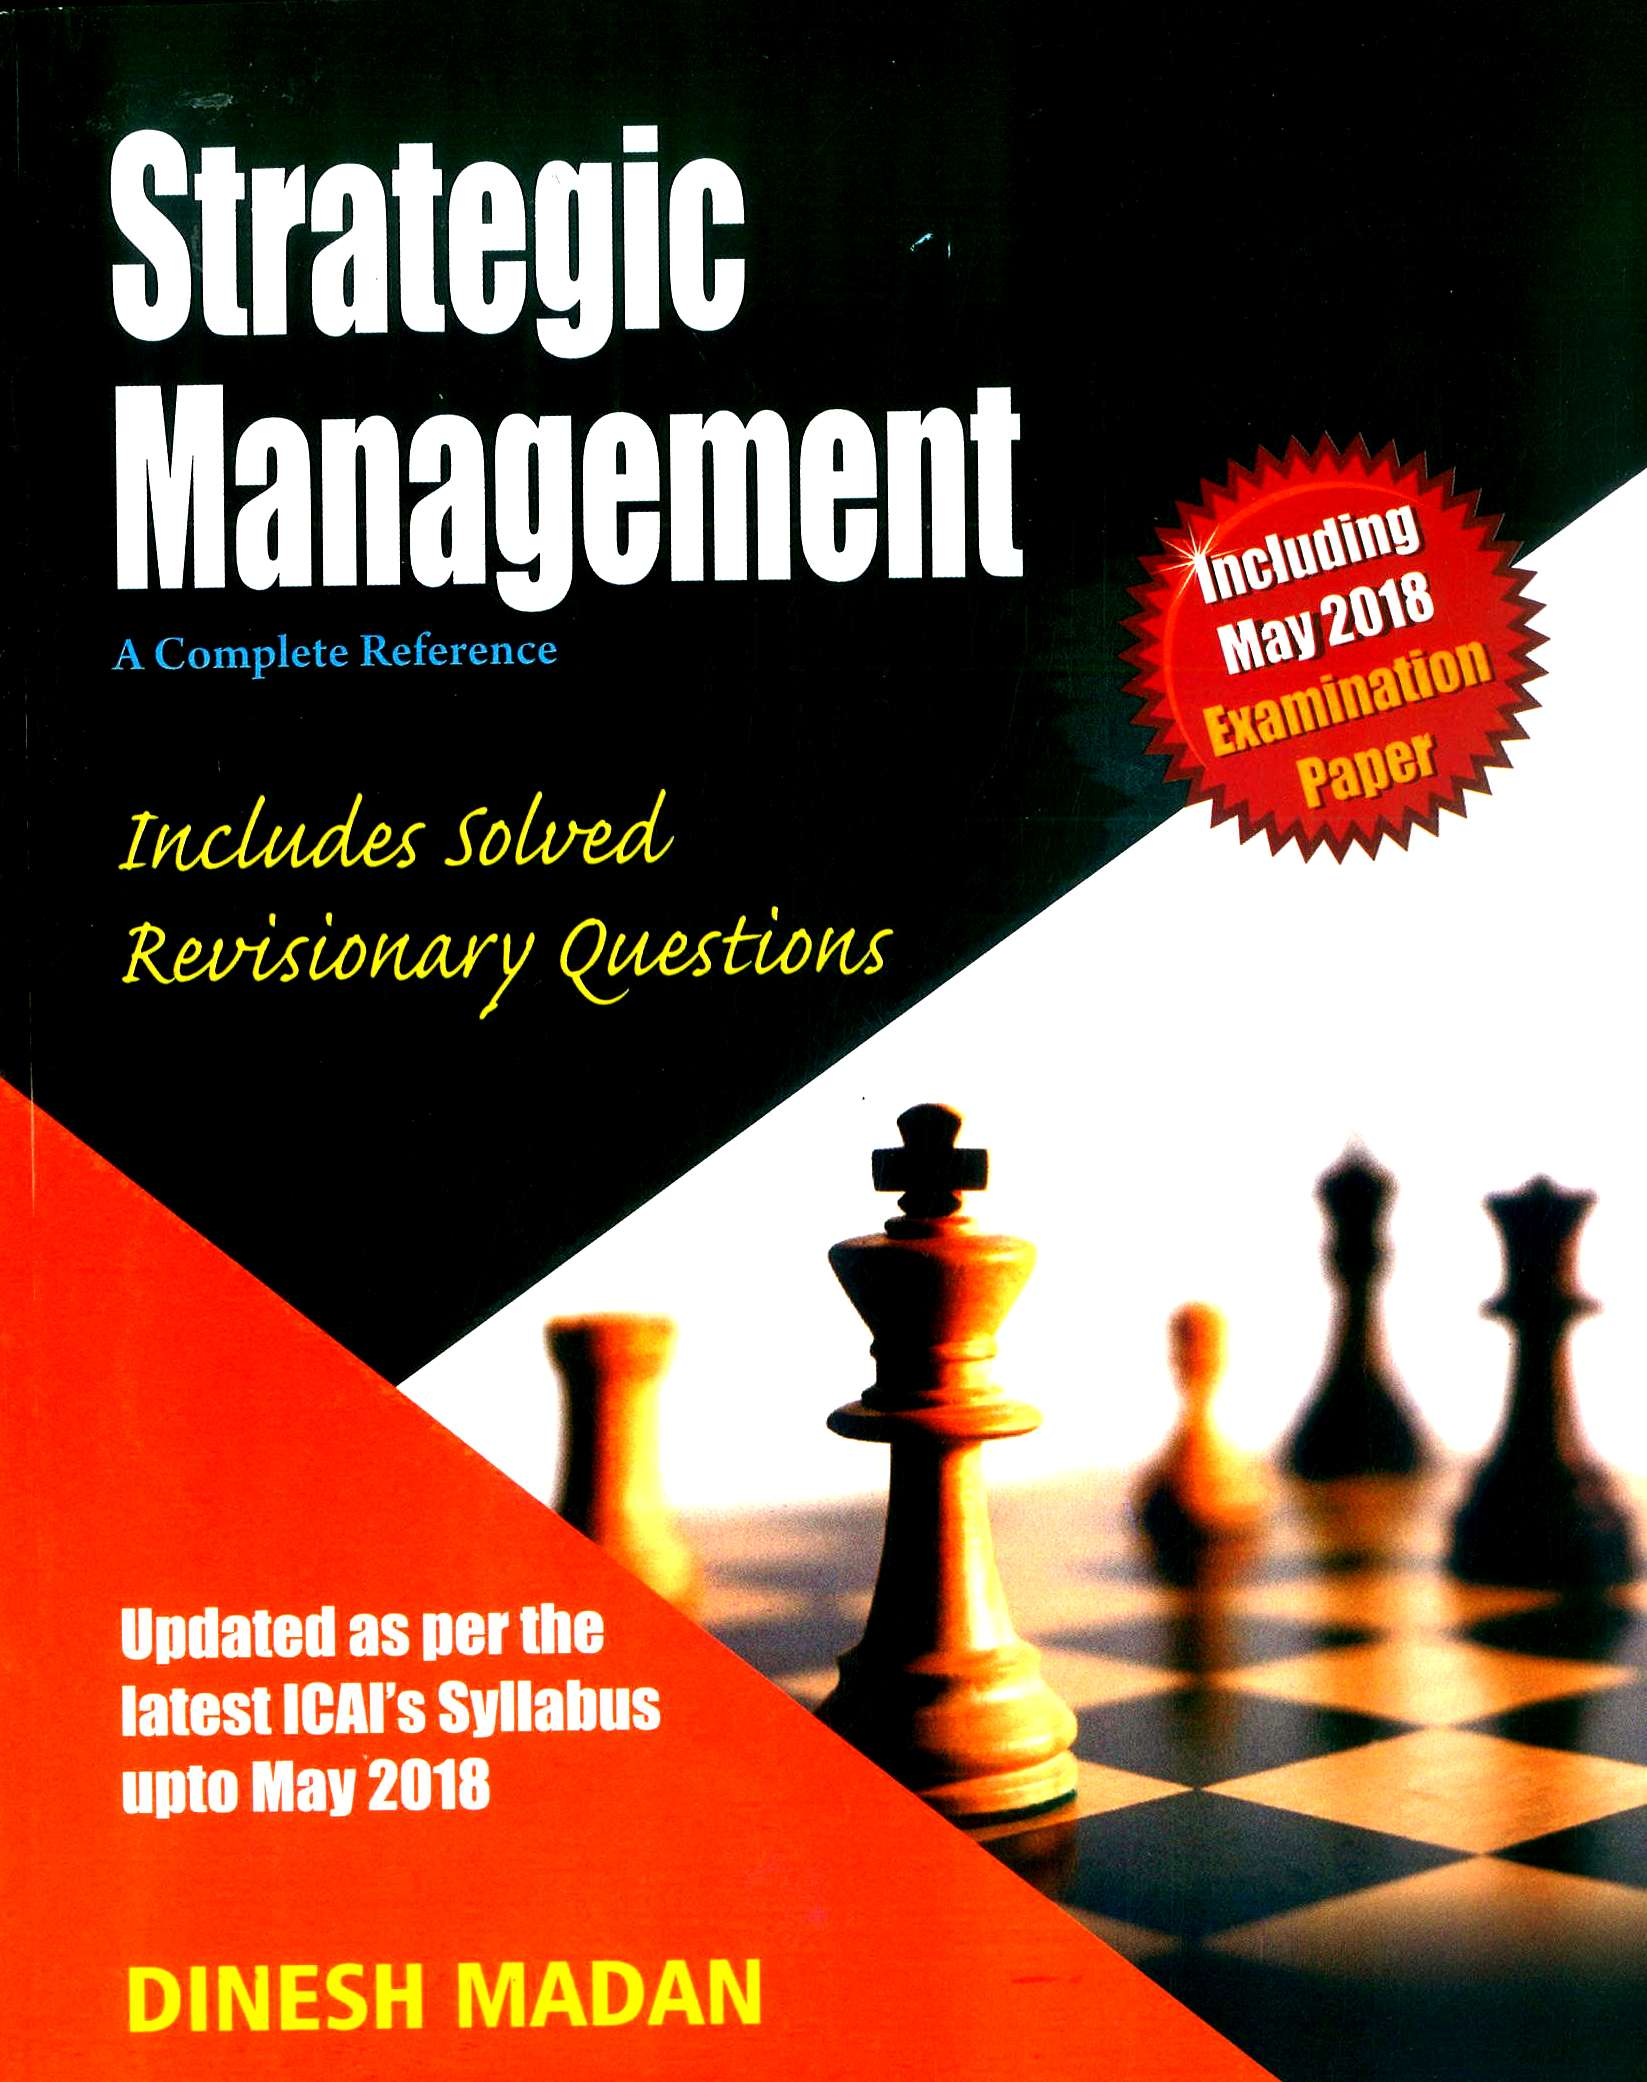 Pooja Law House A Complete Reference Strategic Management For CA IPCC By Dinesh Madan for Nov 2018 (Pooja Law House Publishing) Edition June 2018